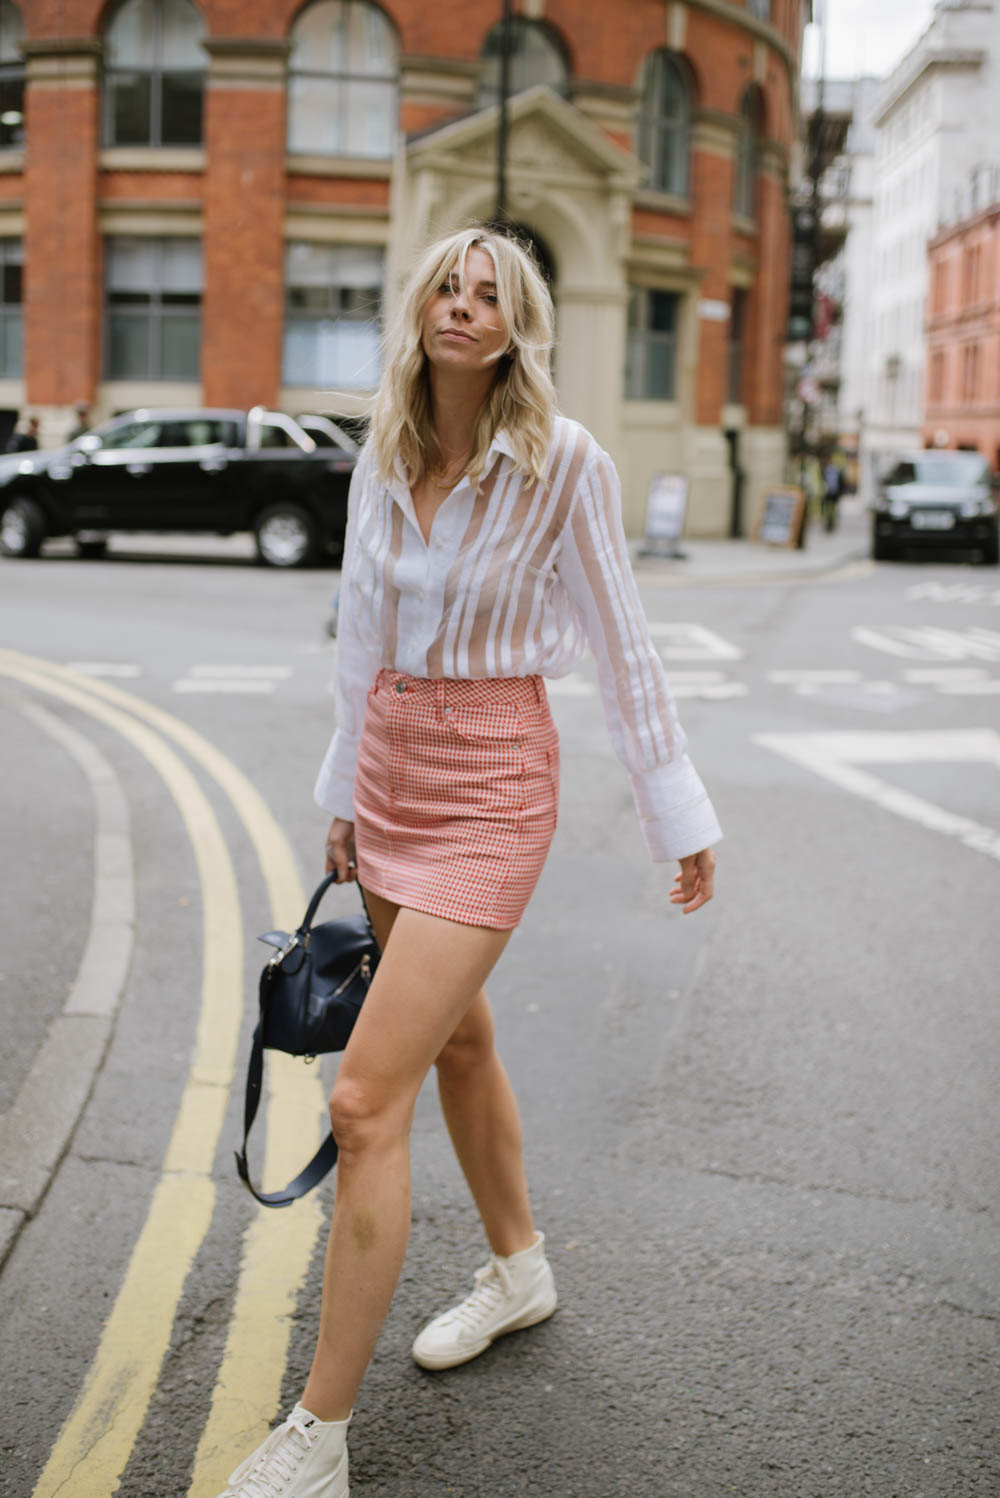 Red-Topshop-skirt-final-edits-15.jpg